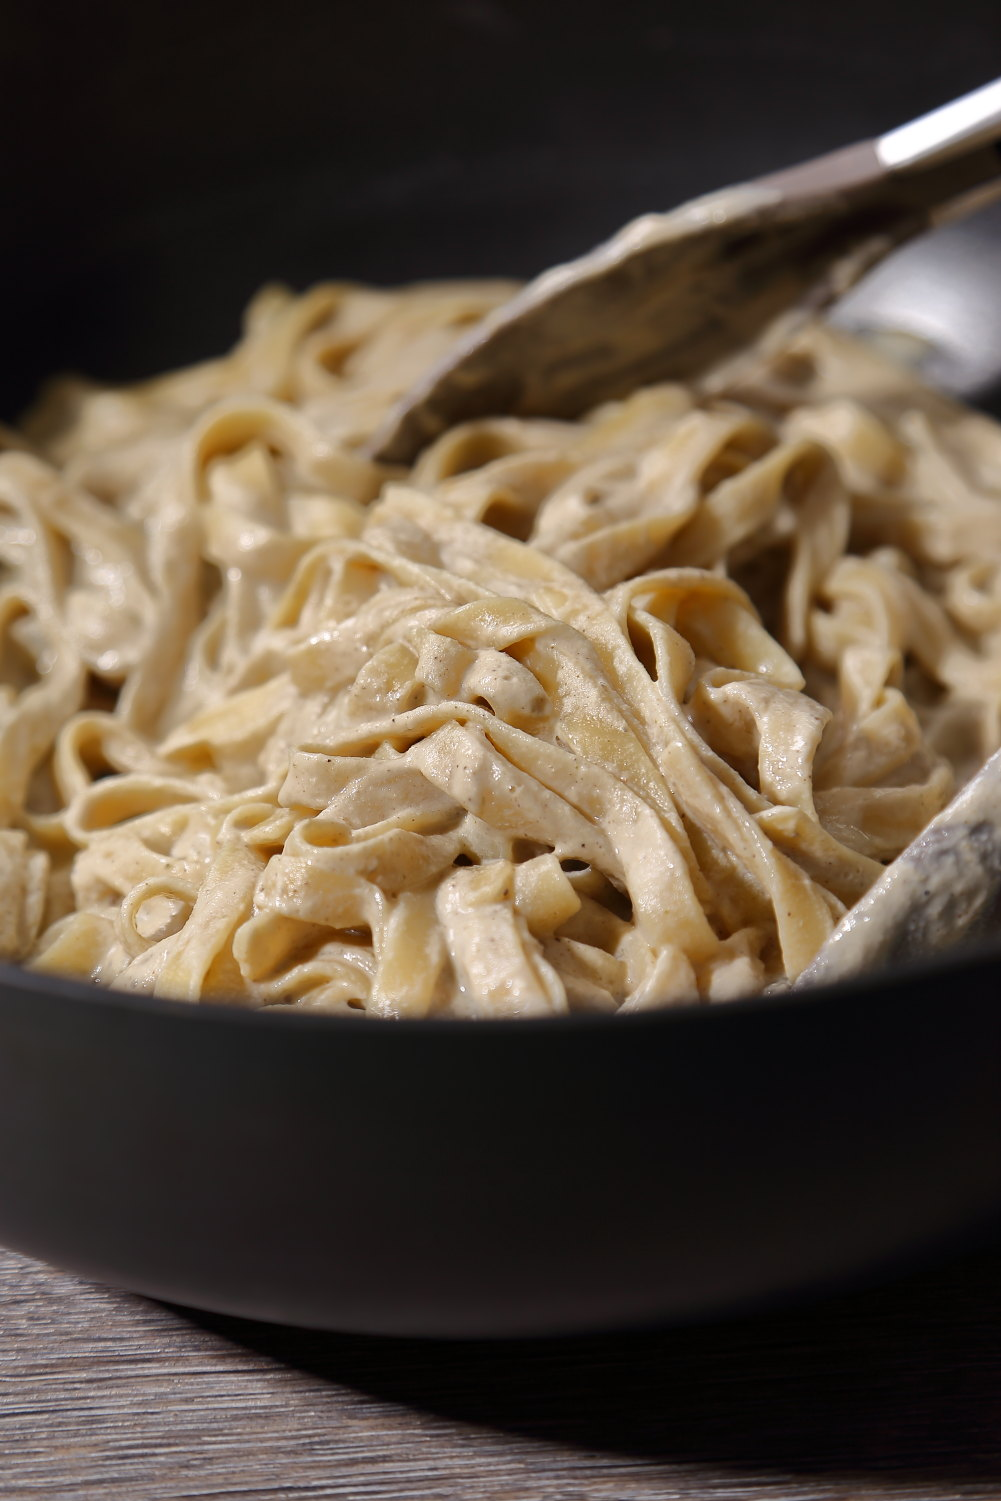 Vegan Alfredo Sauce - a simple recipe for vegan pasta alfredo with tagliatelle and sunflower seed cream.